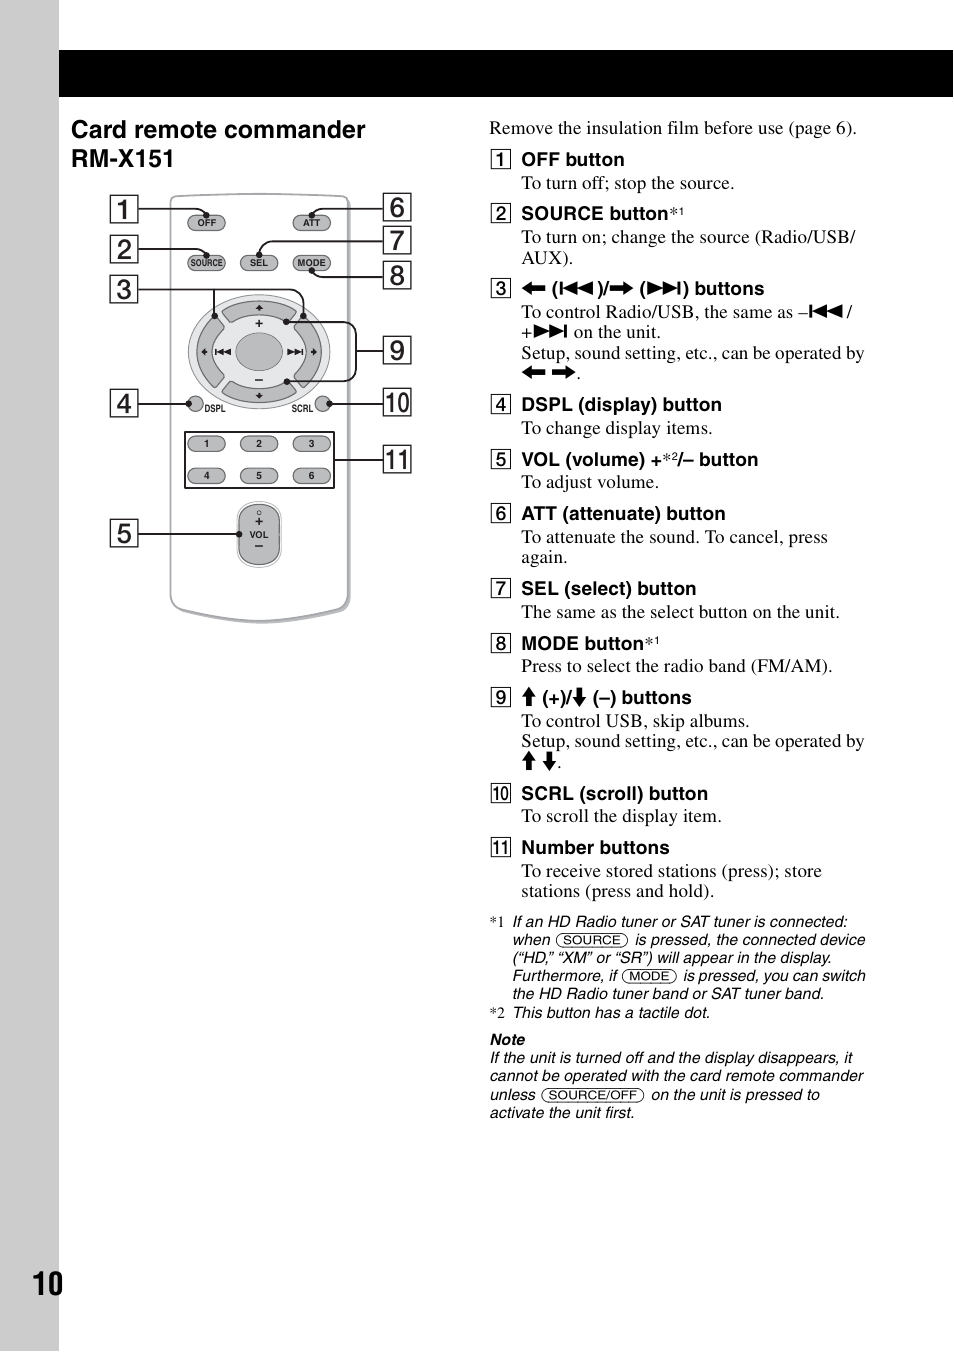 card remote commander rm x151 sony dsx s100 user manual page 10 sony dsx s200x wiring-diagram card remote commander rm x151 sony dsx s100 user manual page 10